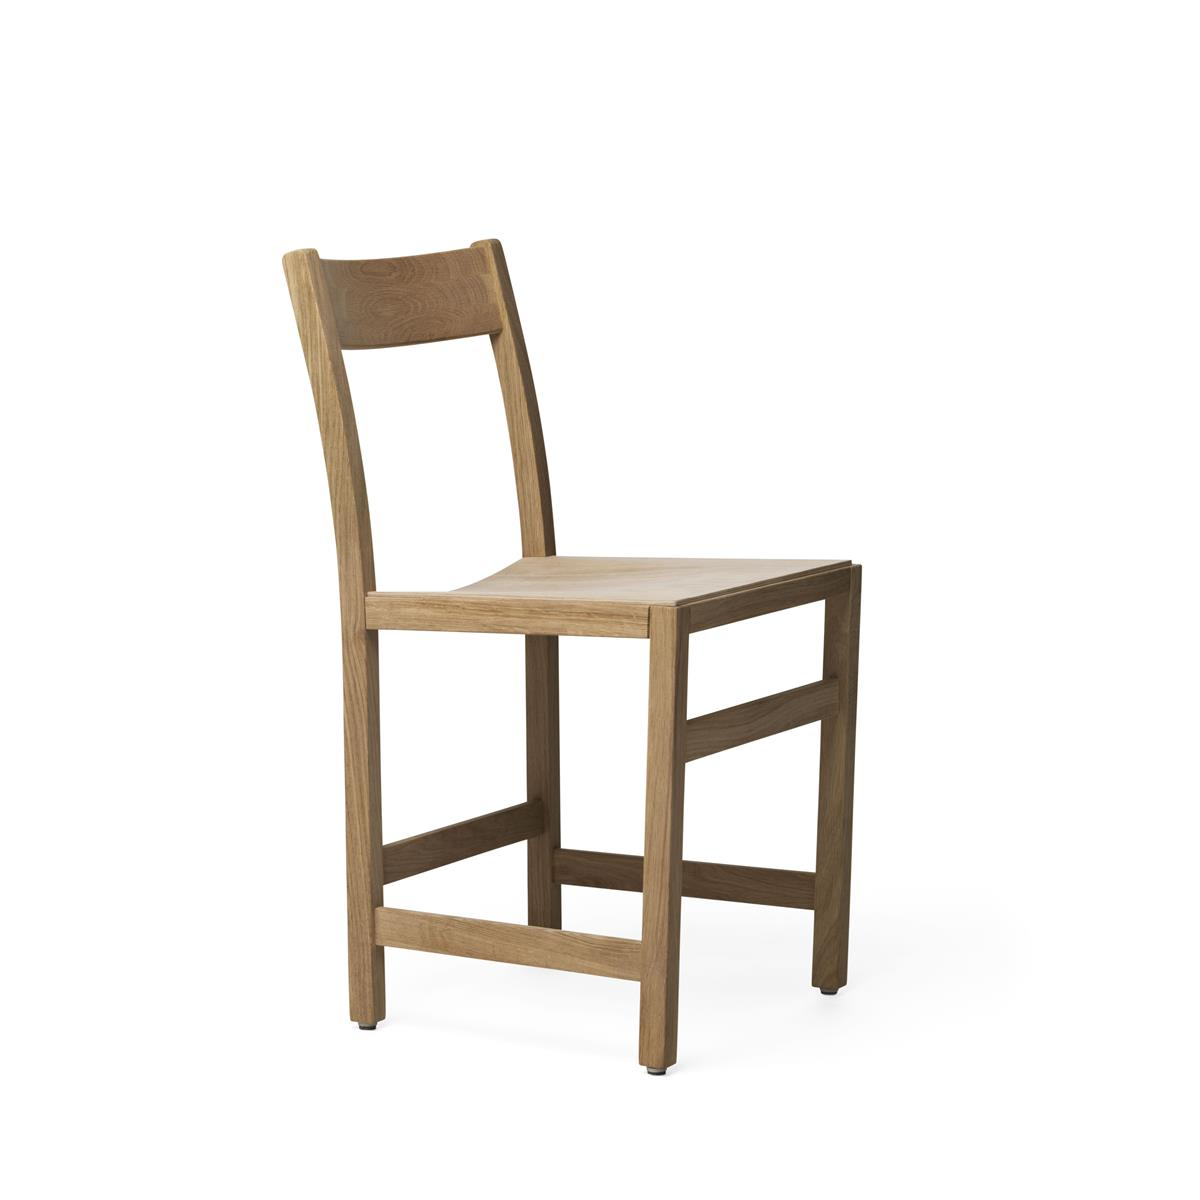 Waiter Chair - Natural Oak